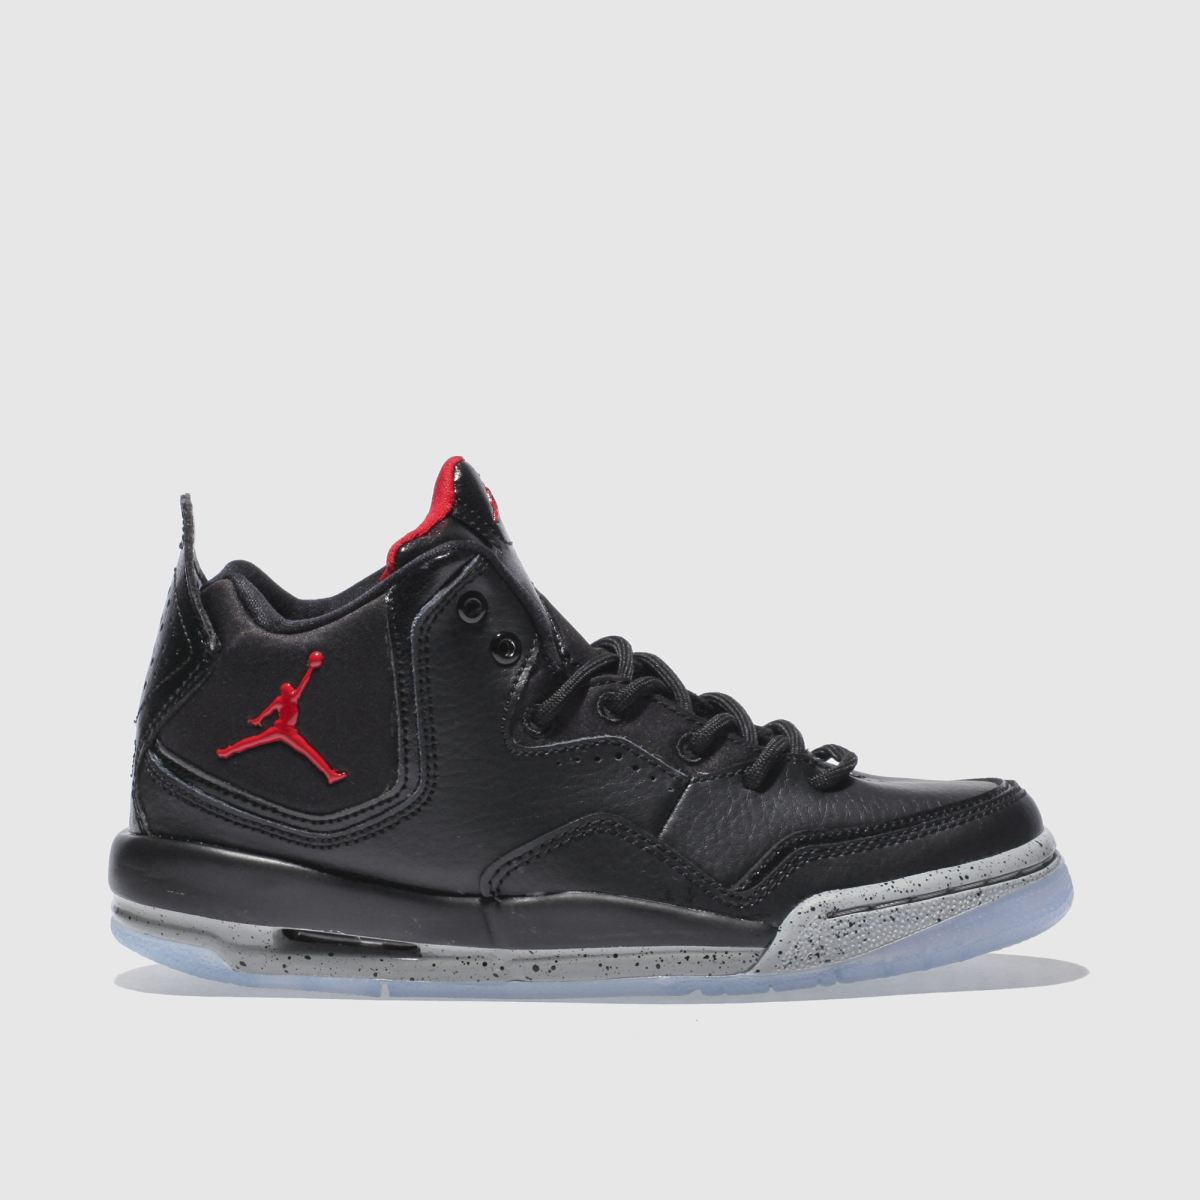 Nike Jordan Black & Red Courtside 23 Youth Trainers